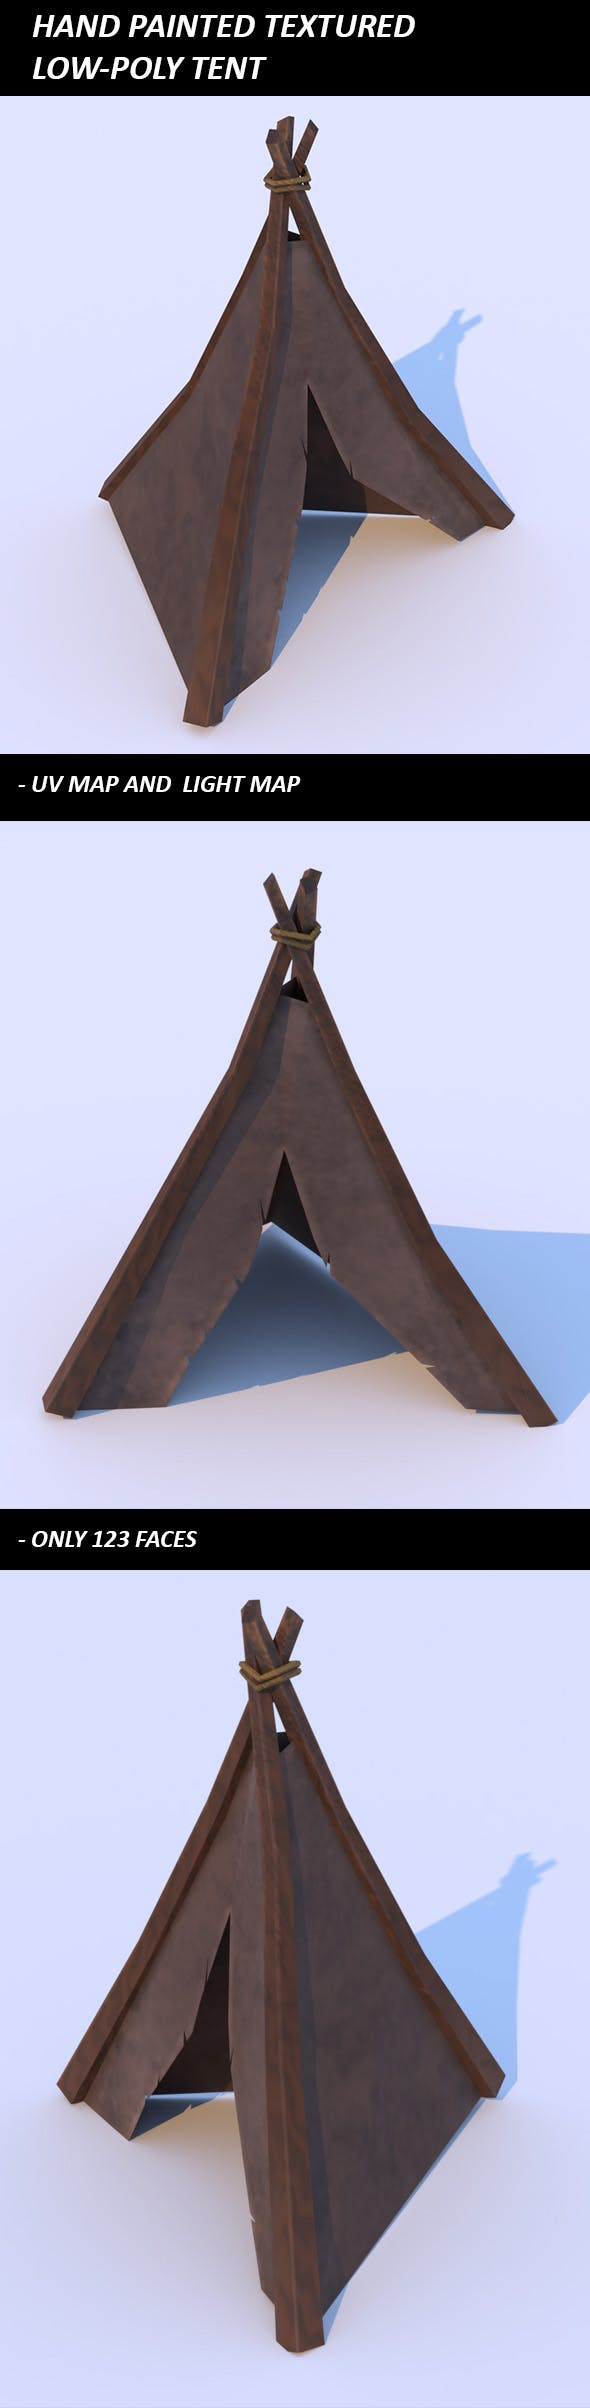 Low-Poly Tent - 3DOcean Item for Sale